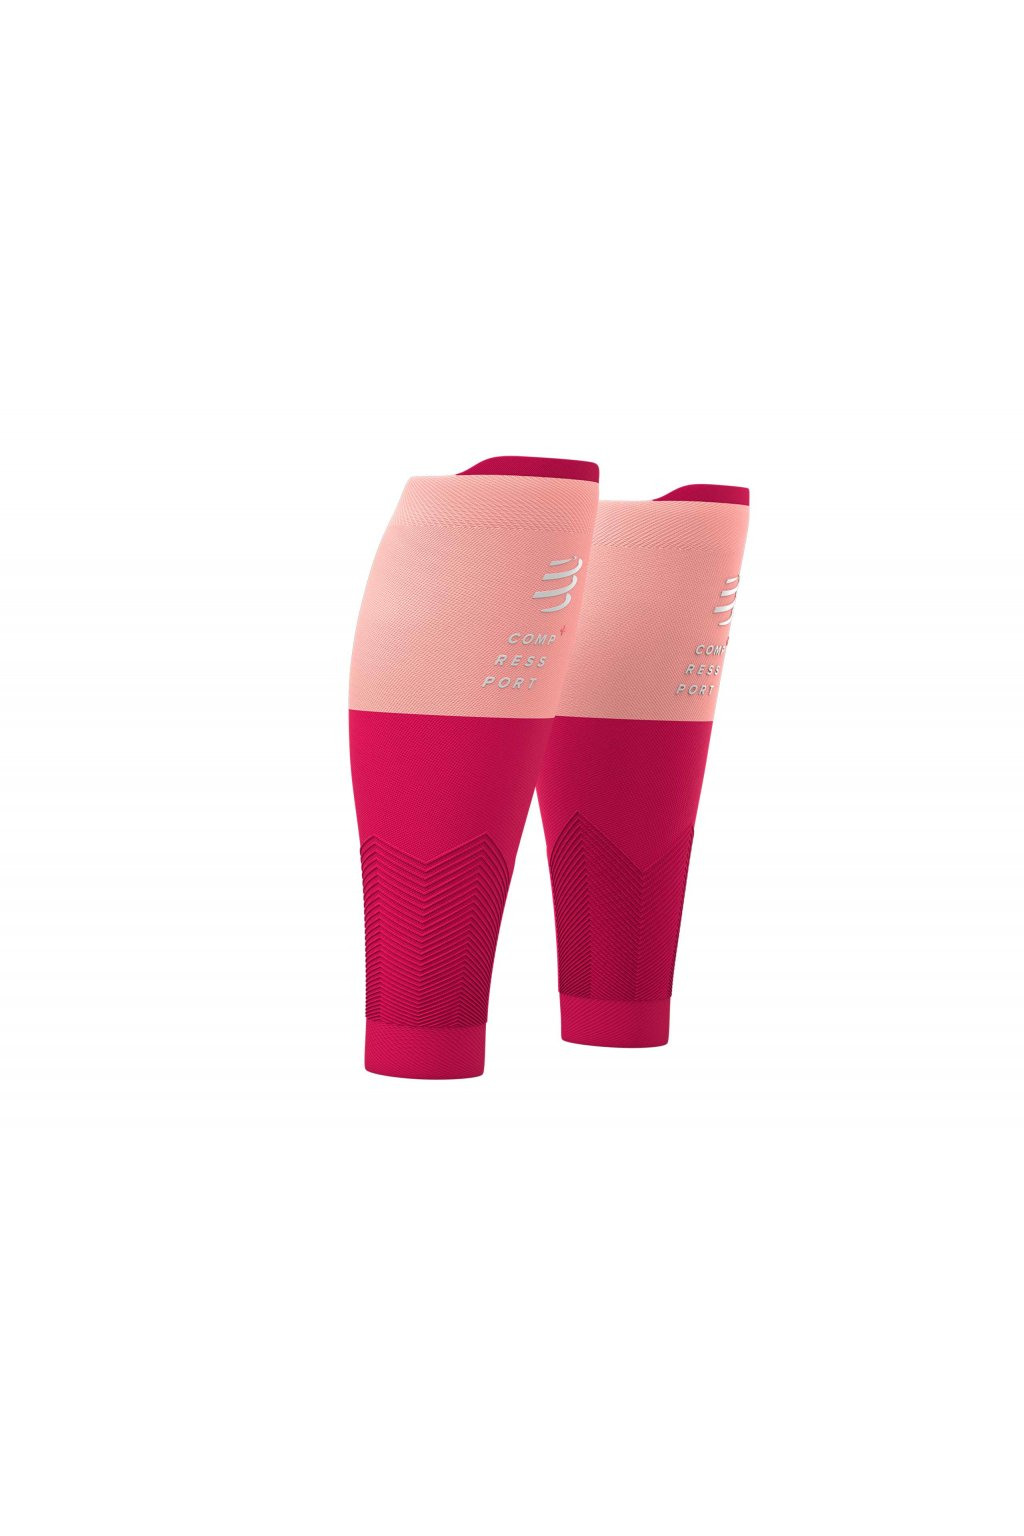 womens compression sleeve